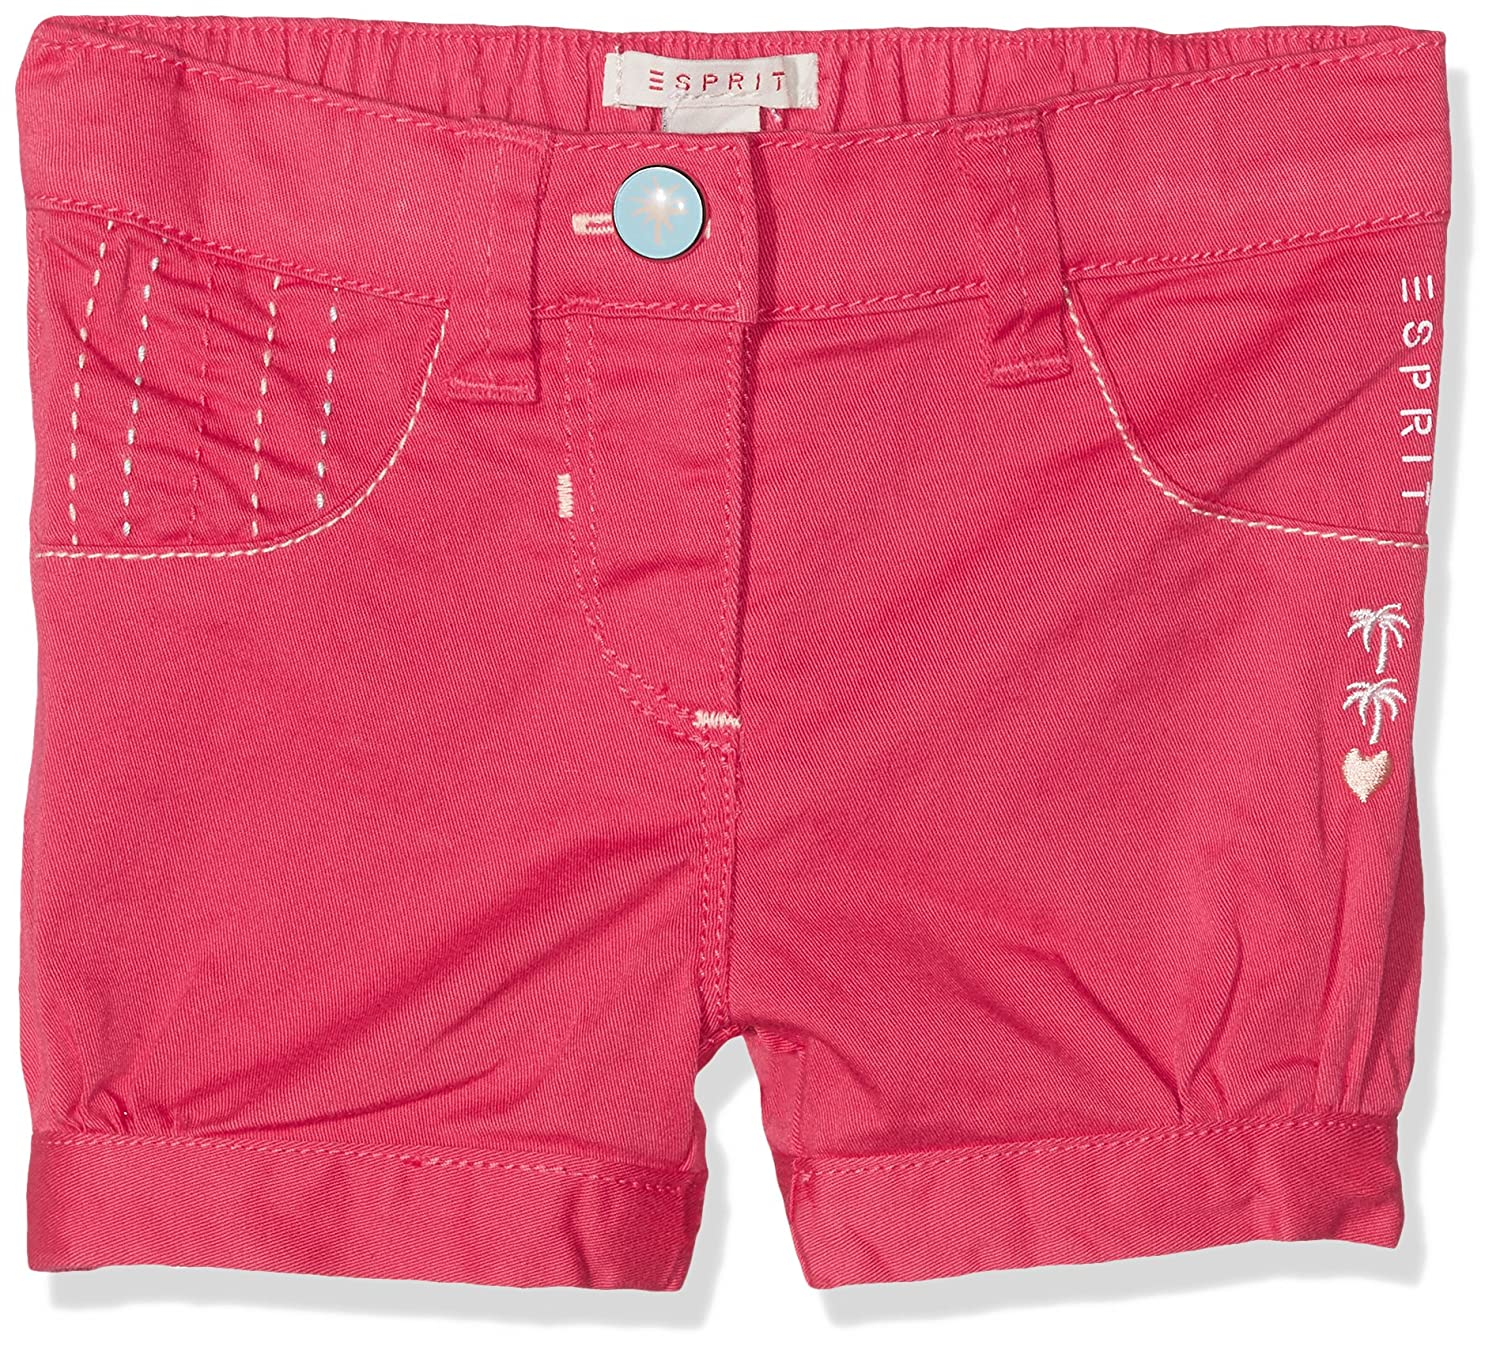 ESPRIT Baby Girls' Shorts ESPRIT Baby Girls' Shorts RL2602104